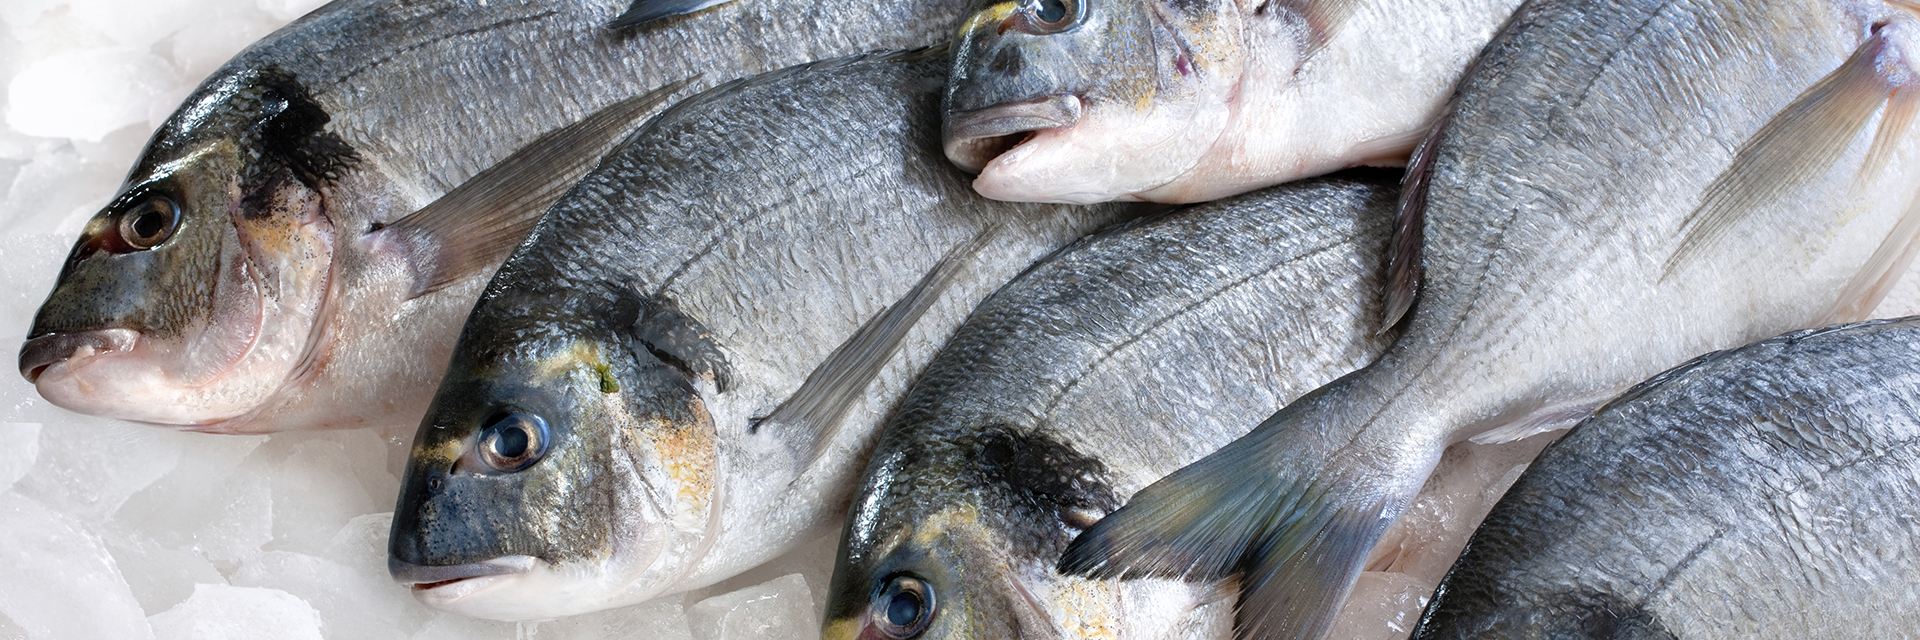 GFTC Continues Working Toward Seafood Traceability